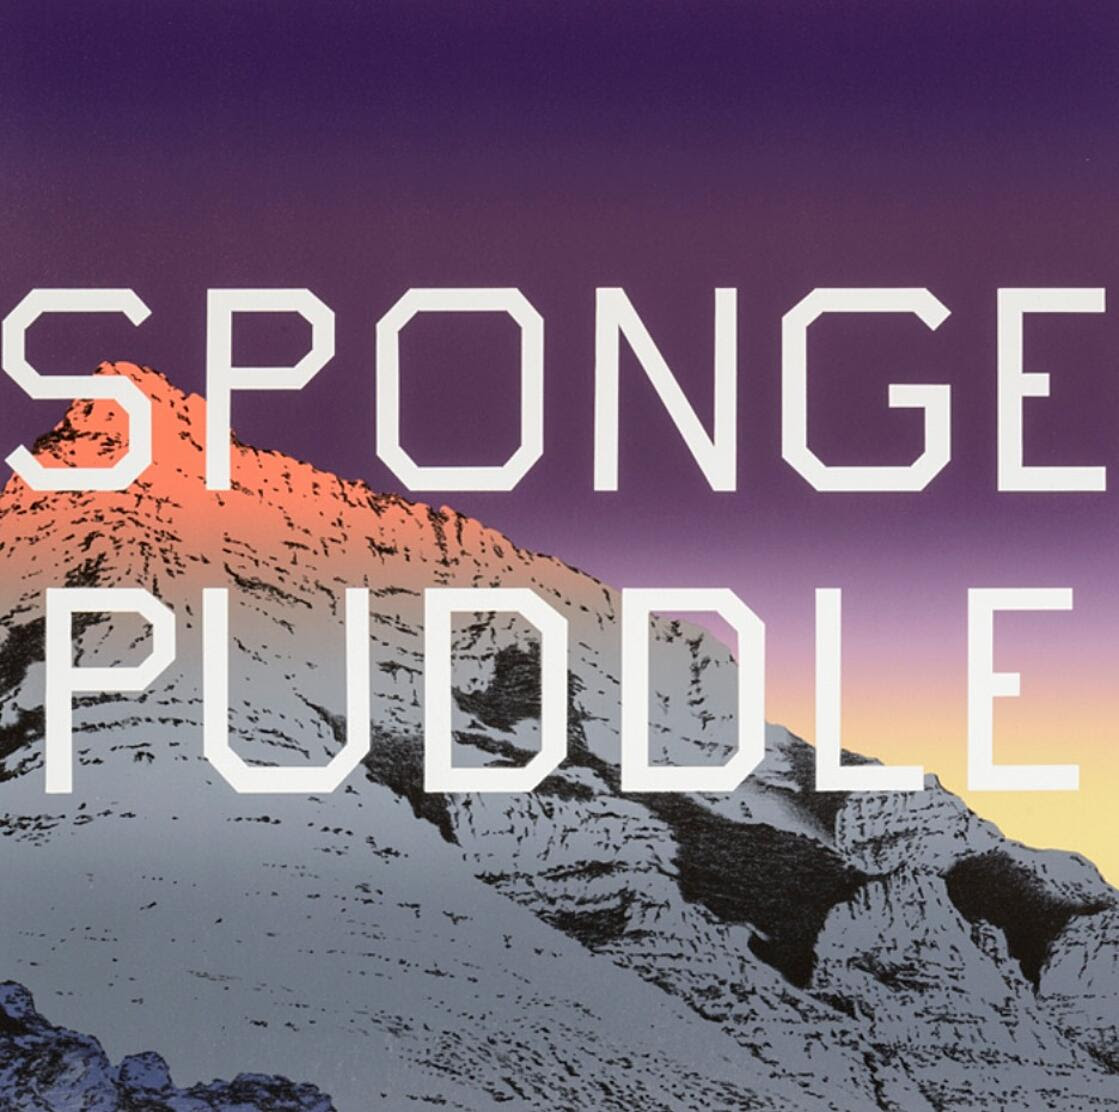 Spone Puddle